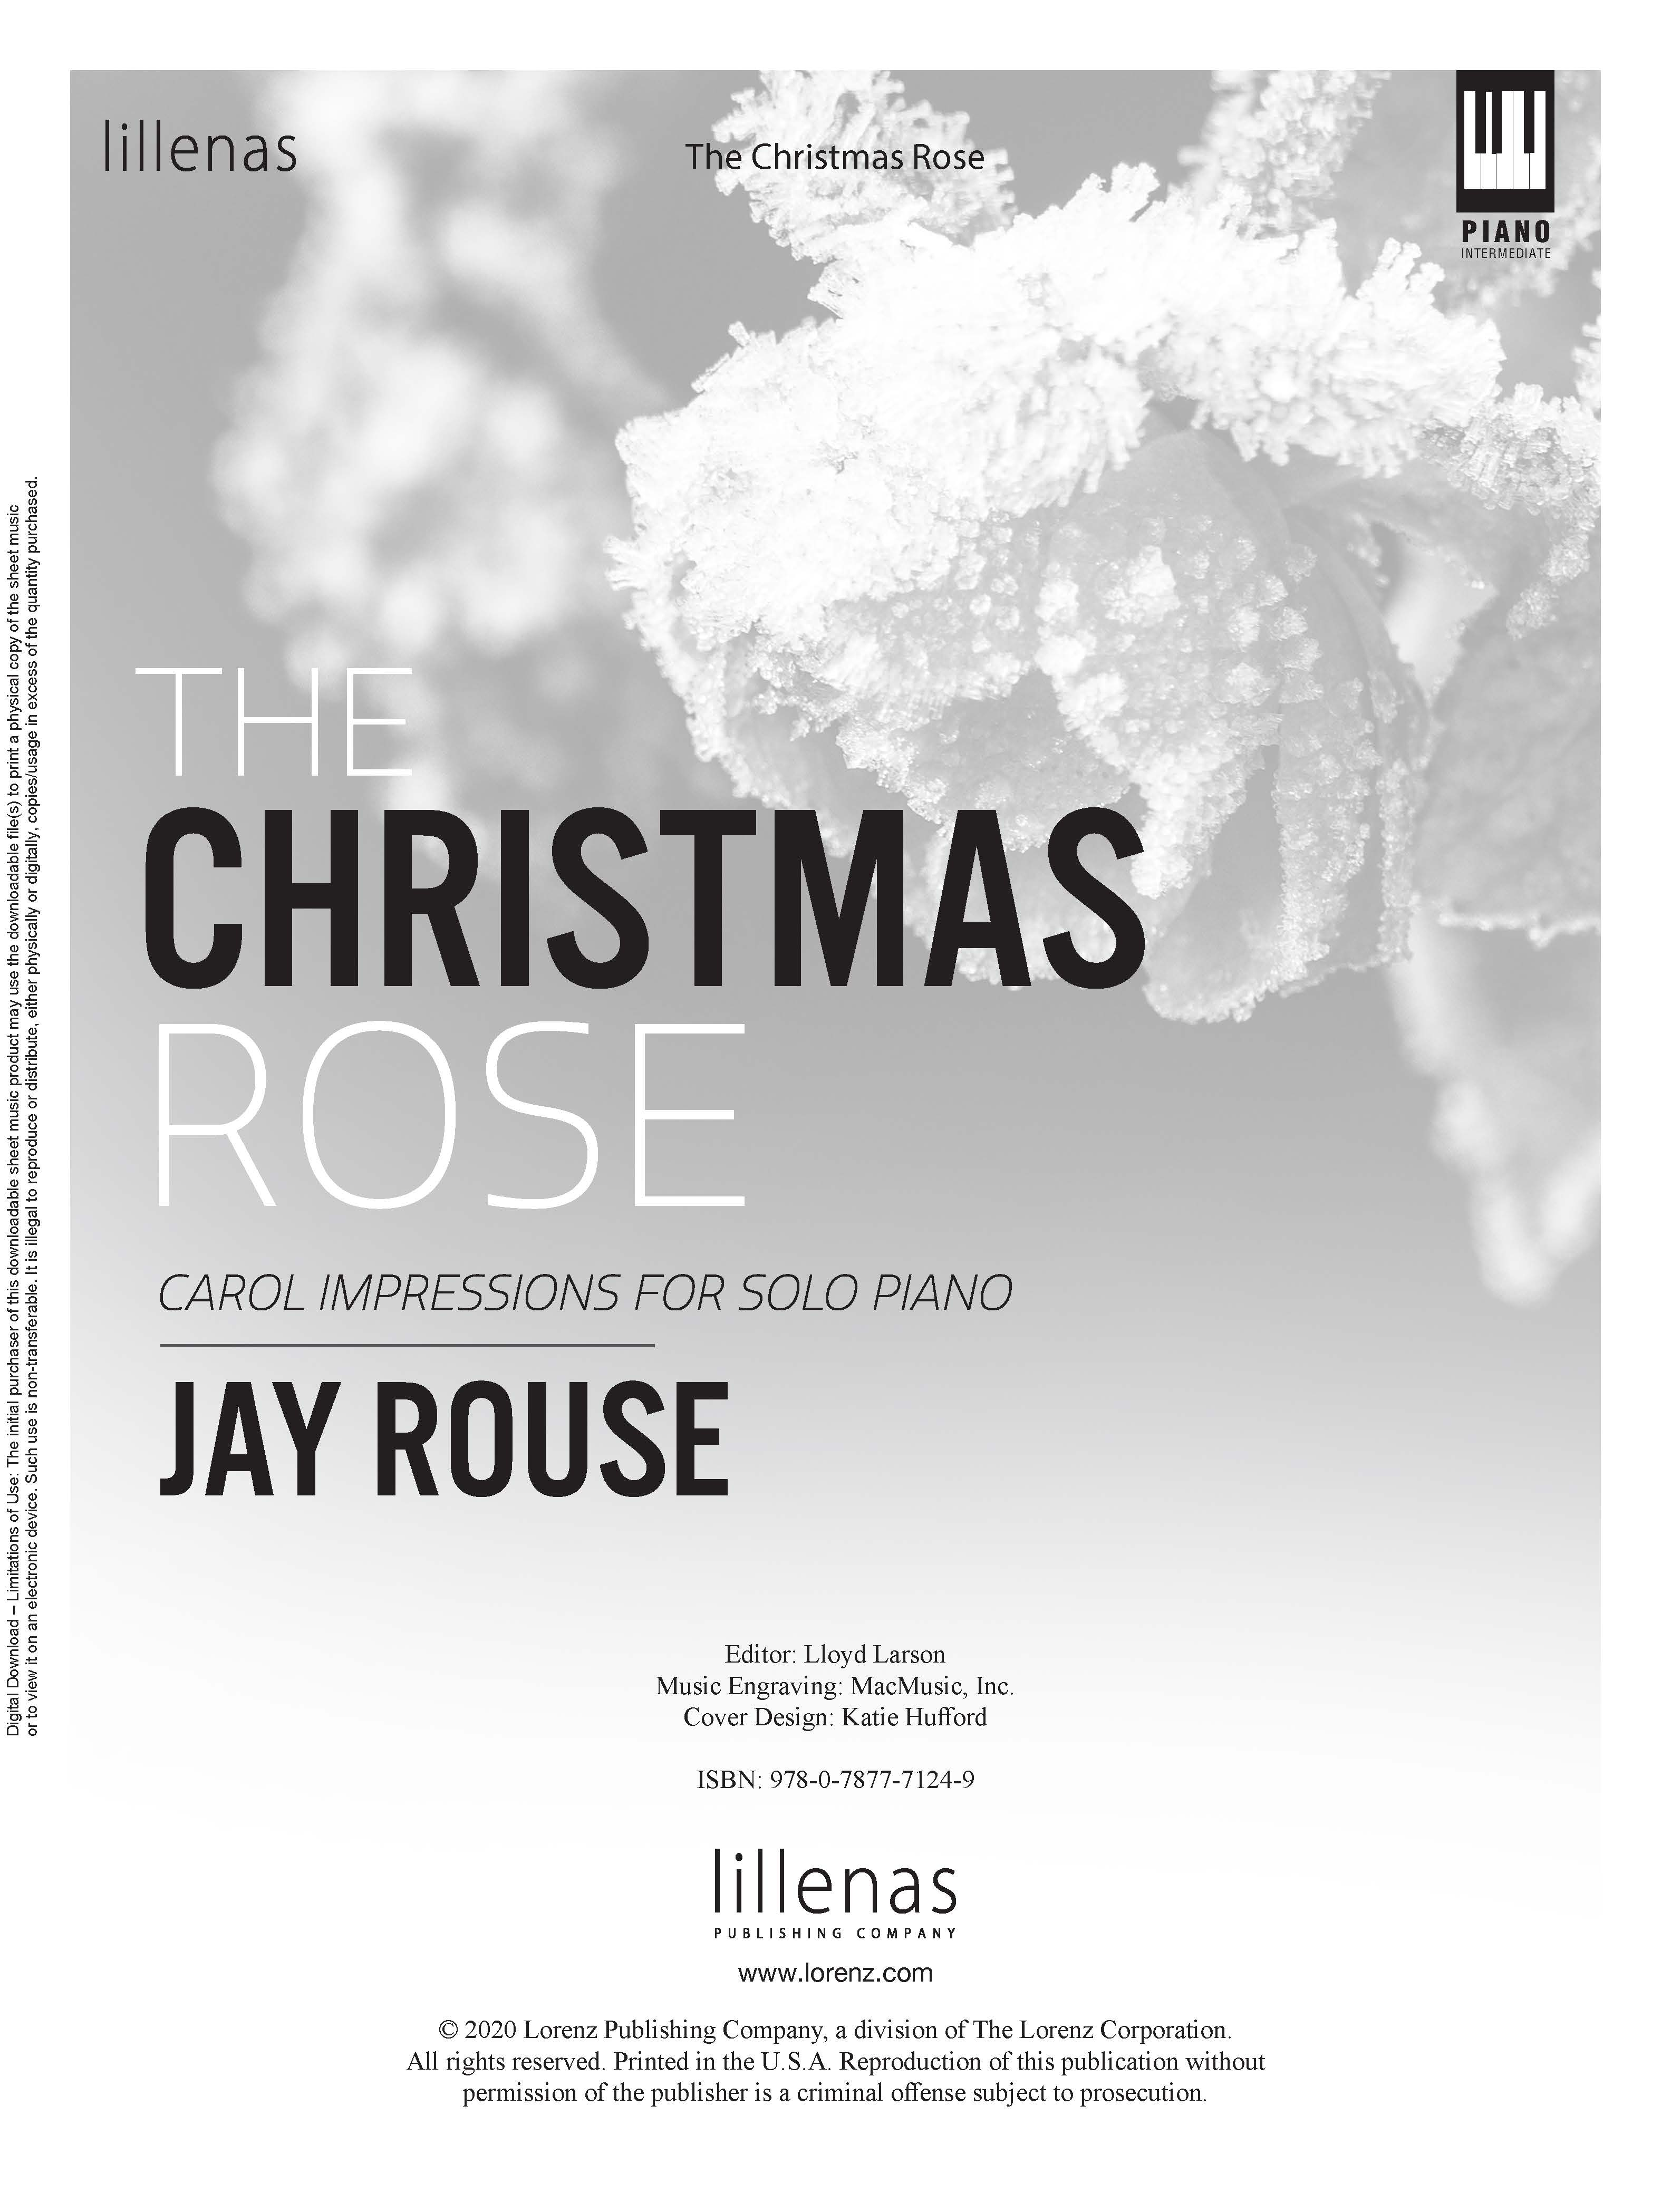 The Christmas Rose - Digital Download